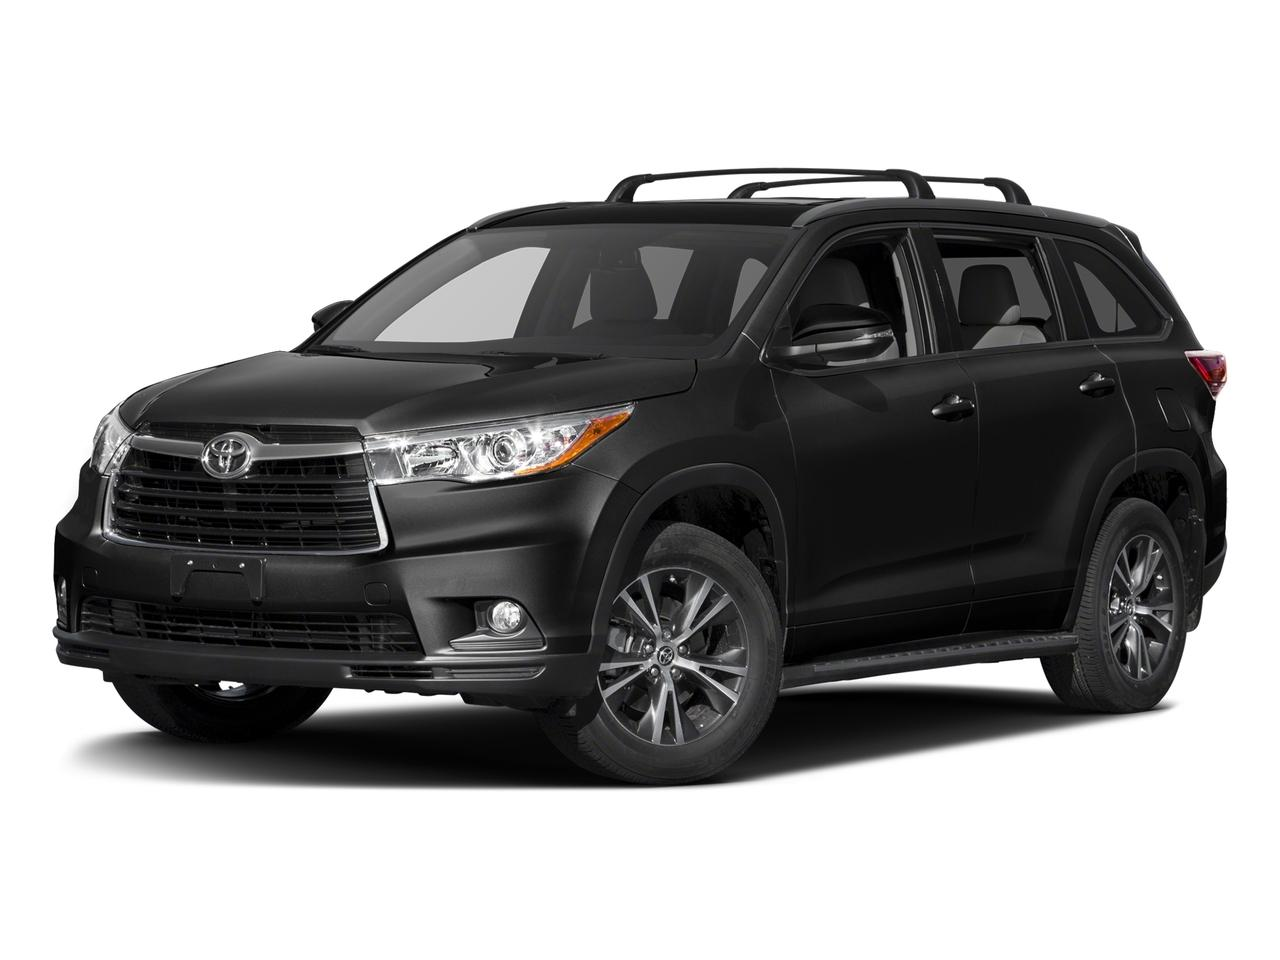 2016 Toyota Highlander Vehicle Photo in OKLAHOMA CITY, OK 73131